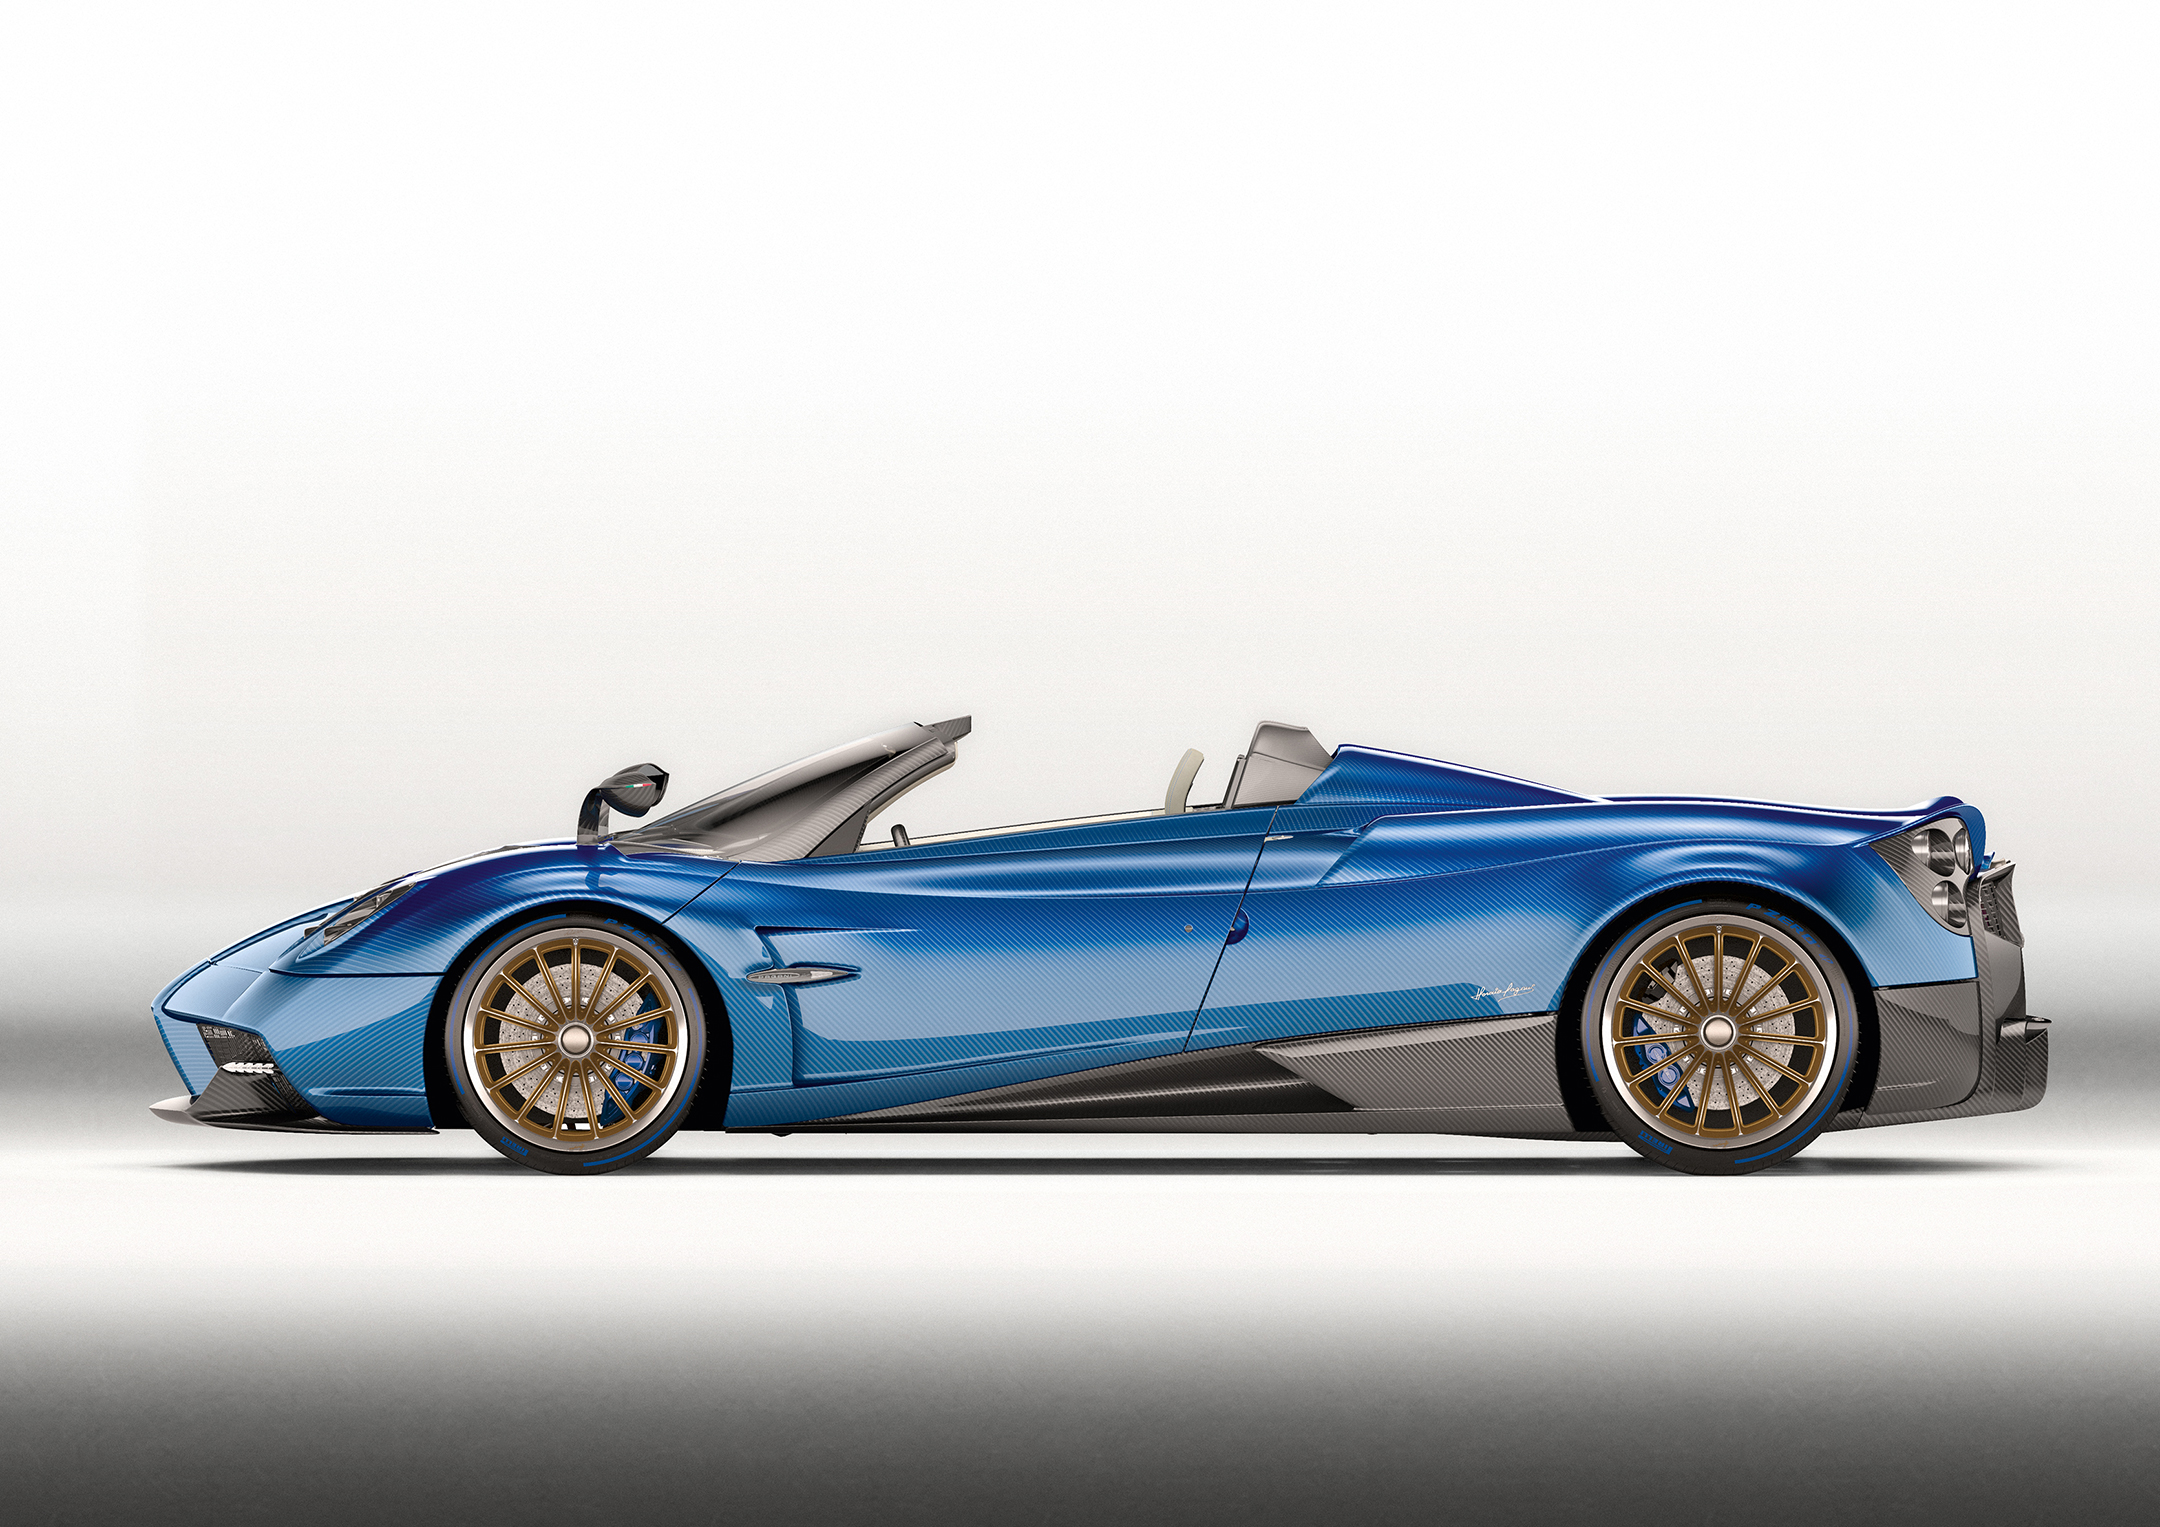 Pagani Huayra Roadster - 2017 - side-face / profil - open top / toit ouvert